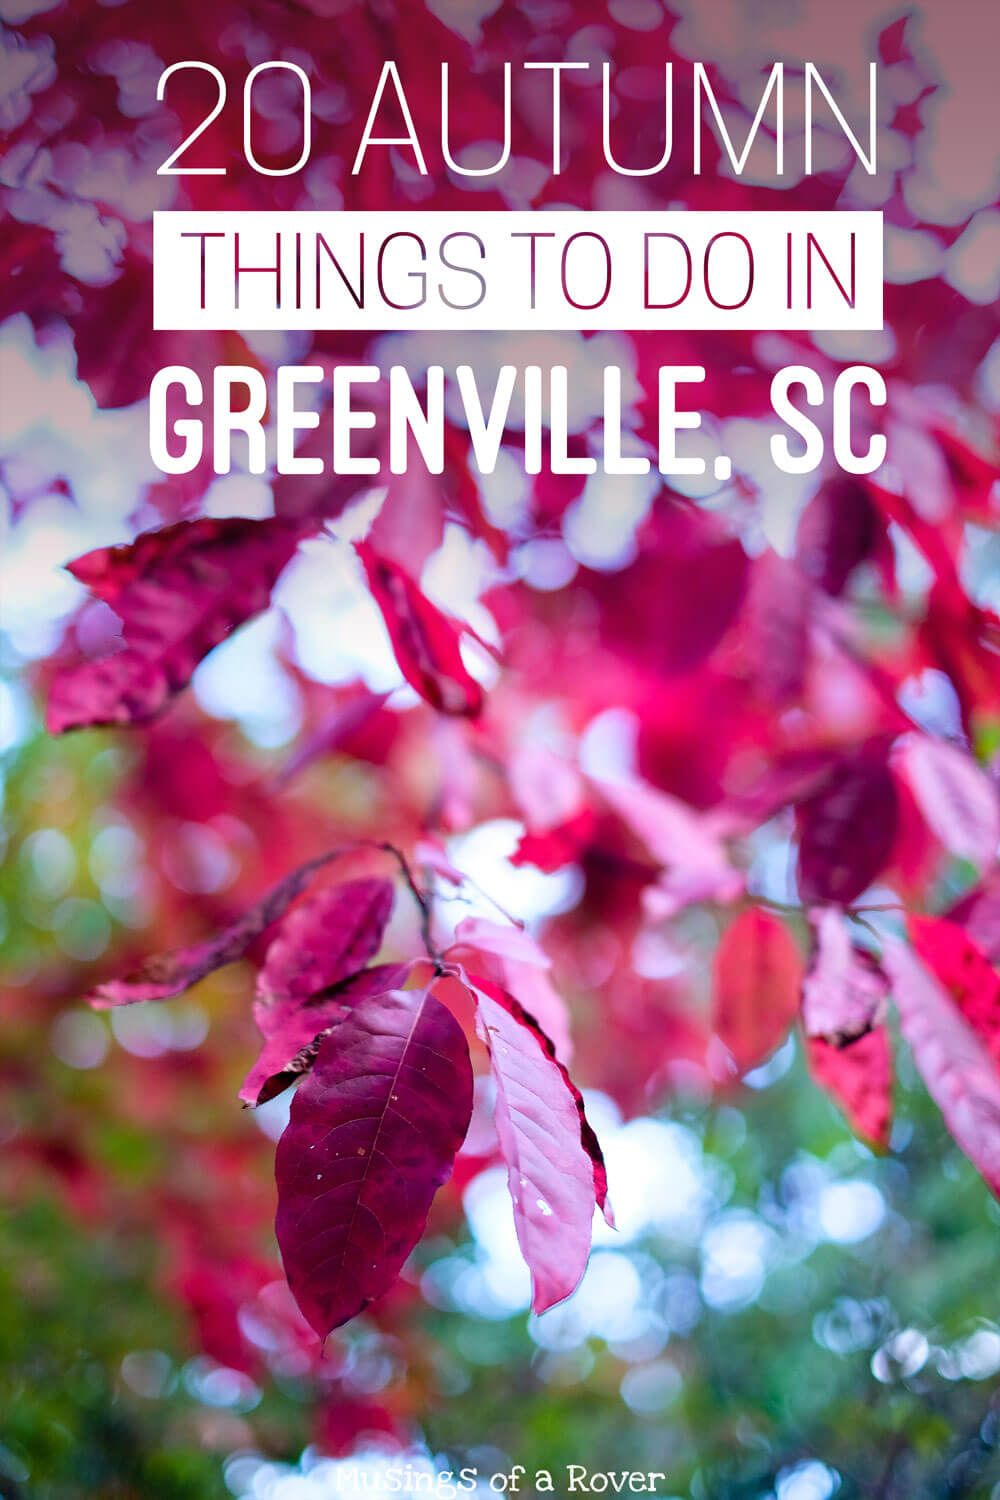 Traveling to Greenville, South Carolina this fall or autumn? Or are you a local looking for something to do this weekend? Here are 20 things to keep you busy! Everything from fall festivals, events, movies in the park, beer festivals, and renaissance fairs to everyday activities like hiking Paris Mountain, picking apples, drinking seasonal brews, taking a day trip to visit some waterfalls, biking the swamp rabbit trail, or haunted houses and Halloween events. travel tips, travel advice, greenville sc things to do, greenville south carolina things to do